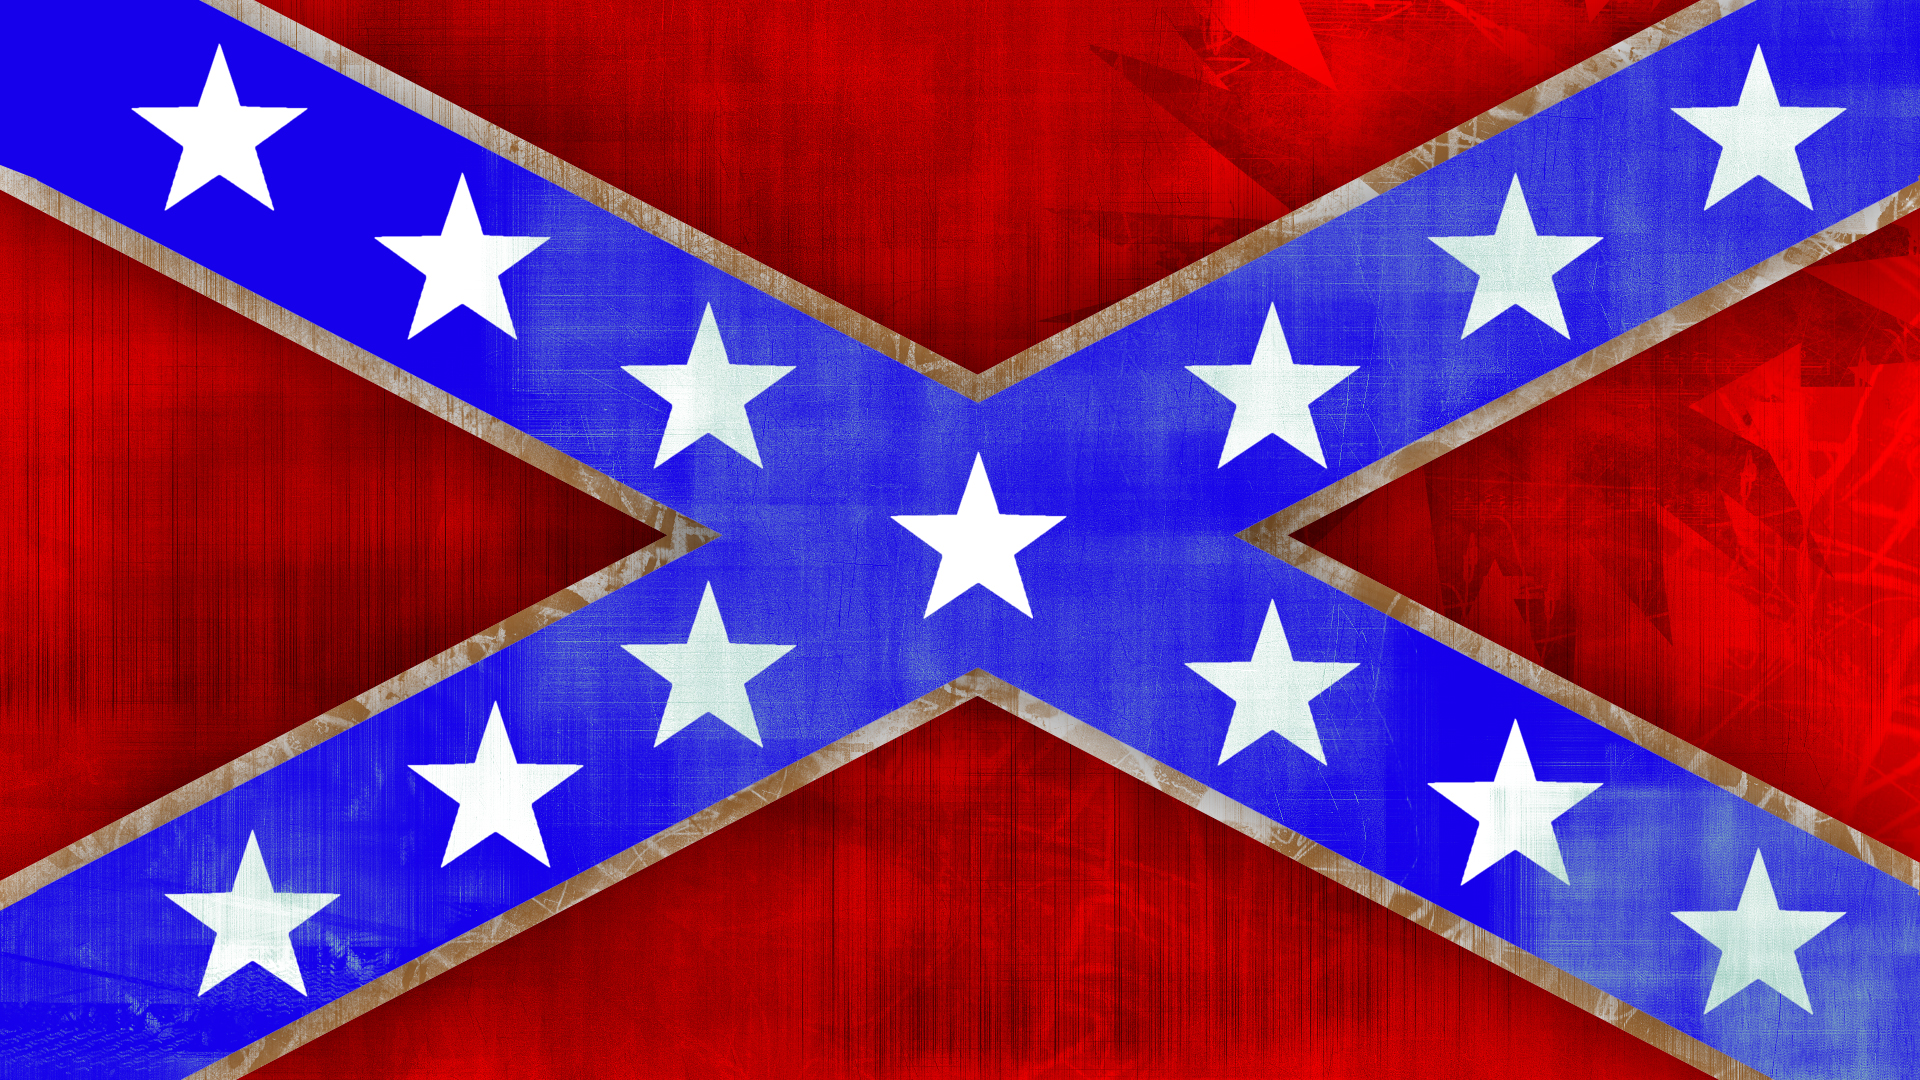 Rebel Flag With Deer Desktop Wallpaper Galleries related rebel flags 1920x1080